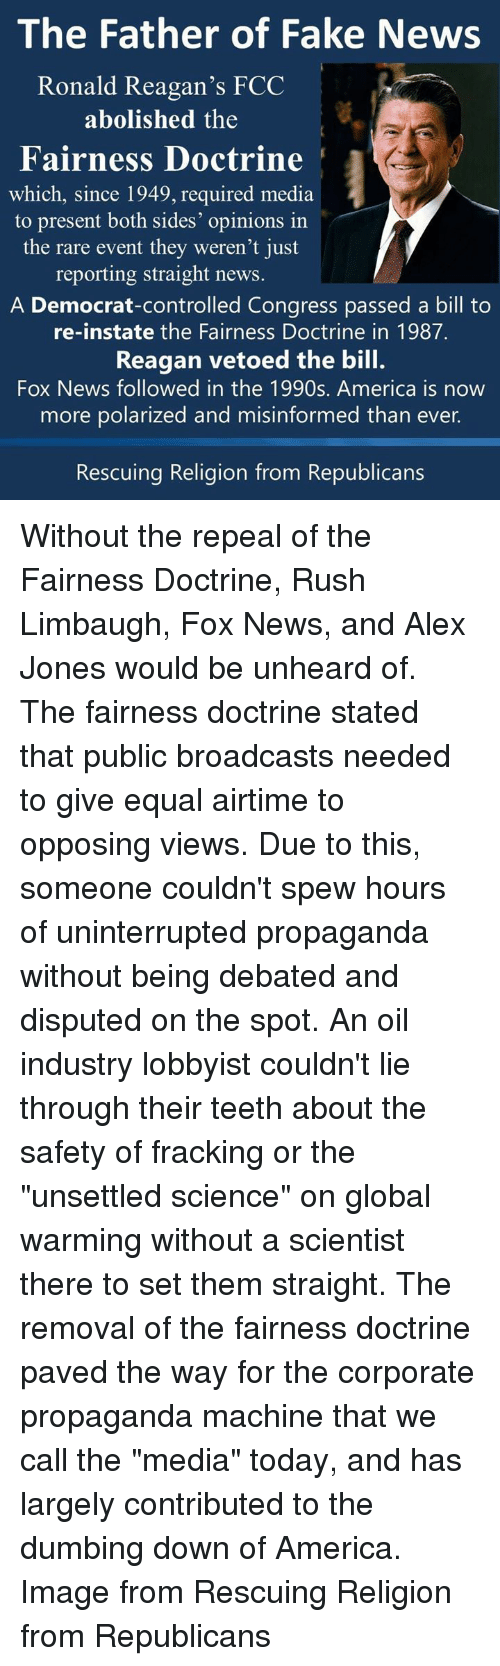 "Rush Limbaugh: The Father of Fake News  Ronald Reagan's FCC  abolished the  Fairness Doctrine  which, since 1949, required media  to present both sides' opinions in  the rare event they weren't just  reporting straight news  A Democrat-controlled Congress passed a bill to  re-instate the Fairness Doctrine in 1987.  Reagan vetoed the bill.  Fox News followed in the 1990s. America is now  more polarized and misinformed than ever.  Rescuing Religion from Republicans Without the repeal of the Fairness Doctrine, Rush Limbaugh, Fox News, and Alex Jones would be unheard of.  The fairness doctrine stated that public broadcasts needed to give equal airtime to opposing views.  Due to this, someone couldn't spew hours of uninterrupted propaganda without being debated and disputed on the spot.   An oil industry lobbyist couldn't lie through their teeth about the safety of fracking or the ""unsettled science"" on global warming without a scientist there to set them straight.  The removal of the fairness doctrine paved the way for the corporate propaganda machine that we call the ""media"" today, and has largely contributed to the dumbing down of America.   Image from Rescuing Religion from Republicans"